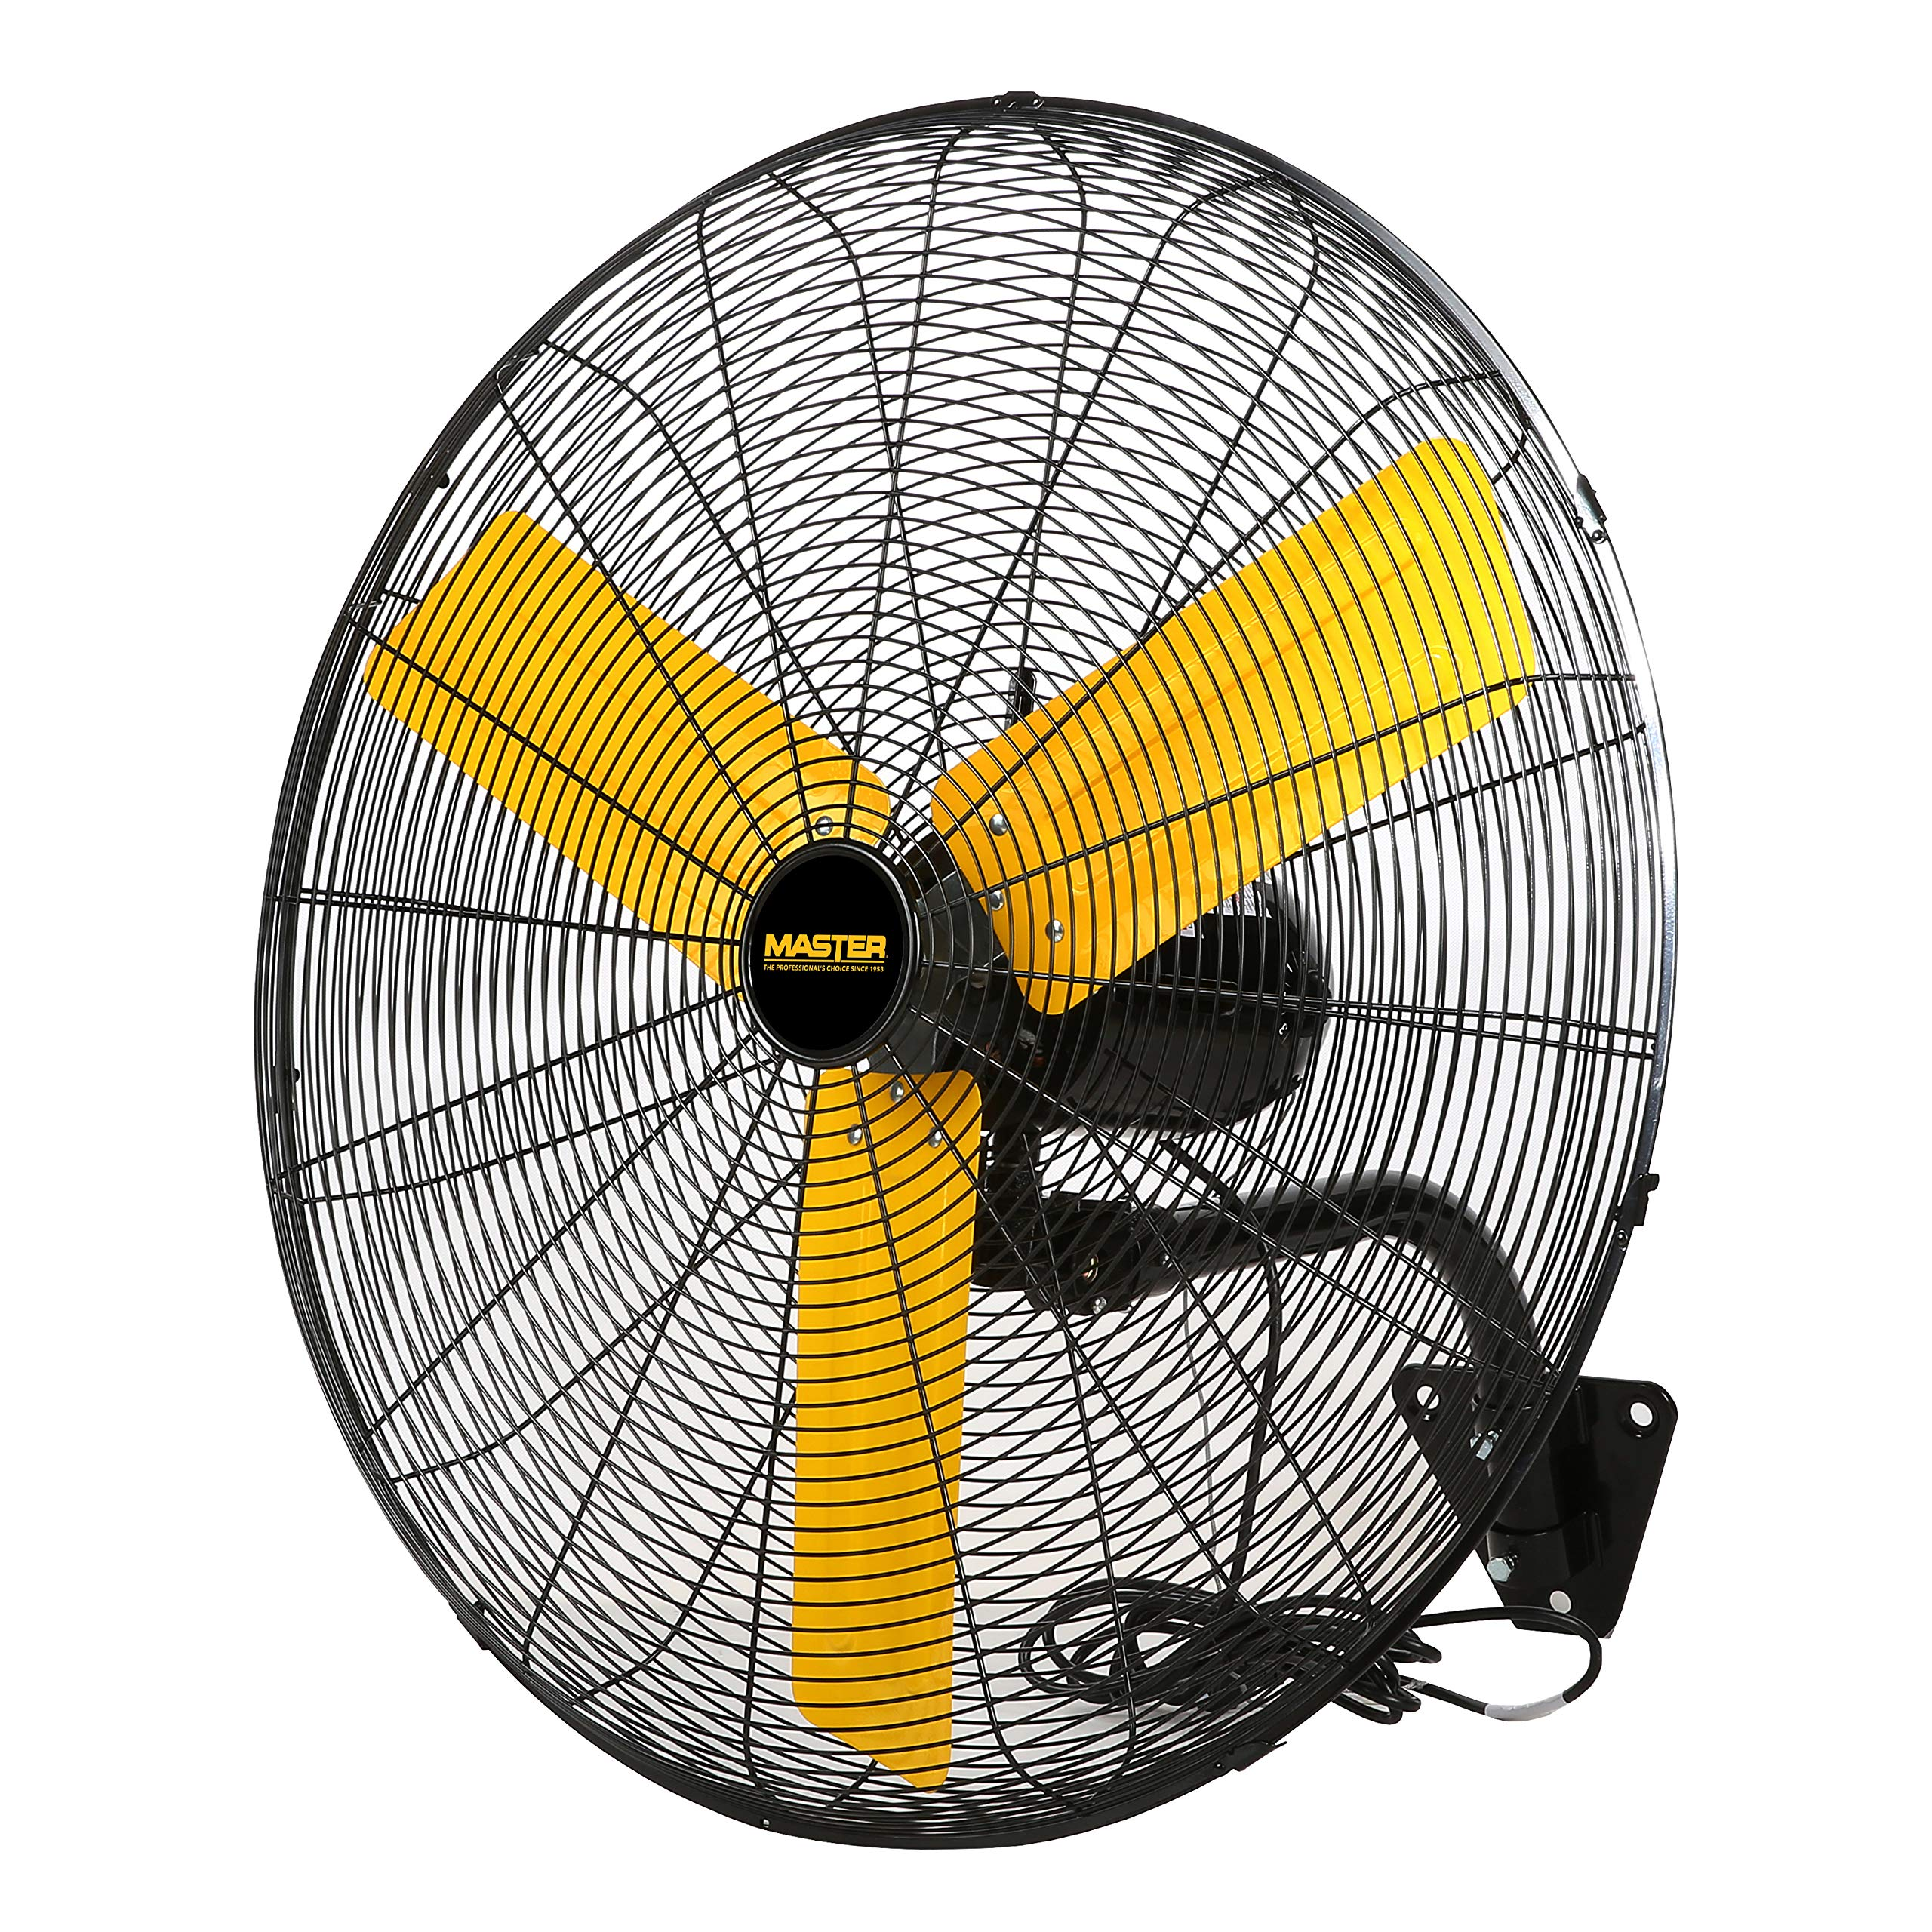 Master Professional High Velocity Wall Fan, 30-inch, 3 Speed, 6,000 CFM, OSHA Compliant - MAC-30W by Master